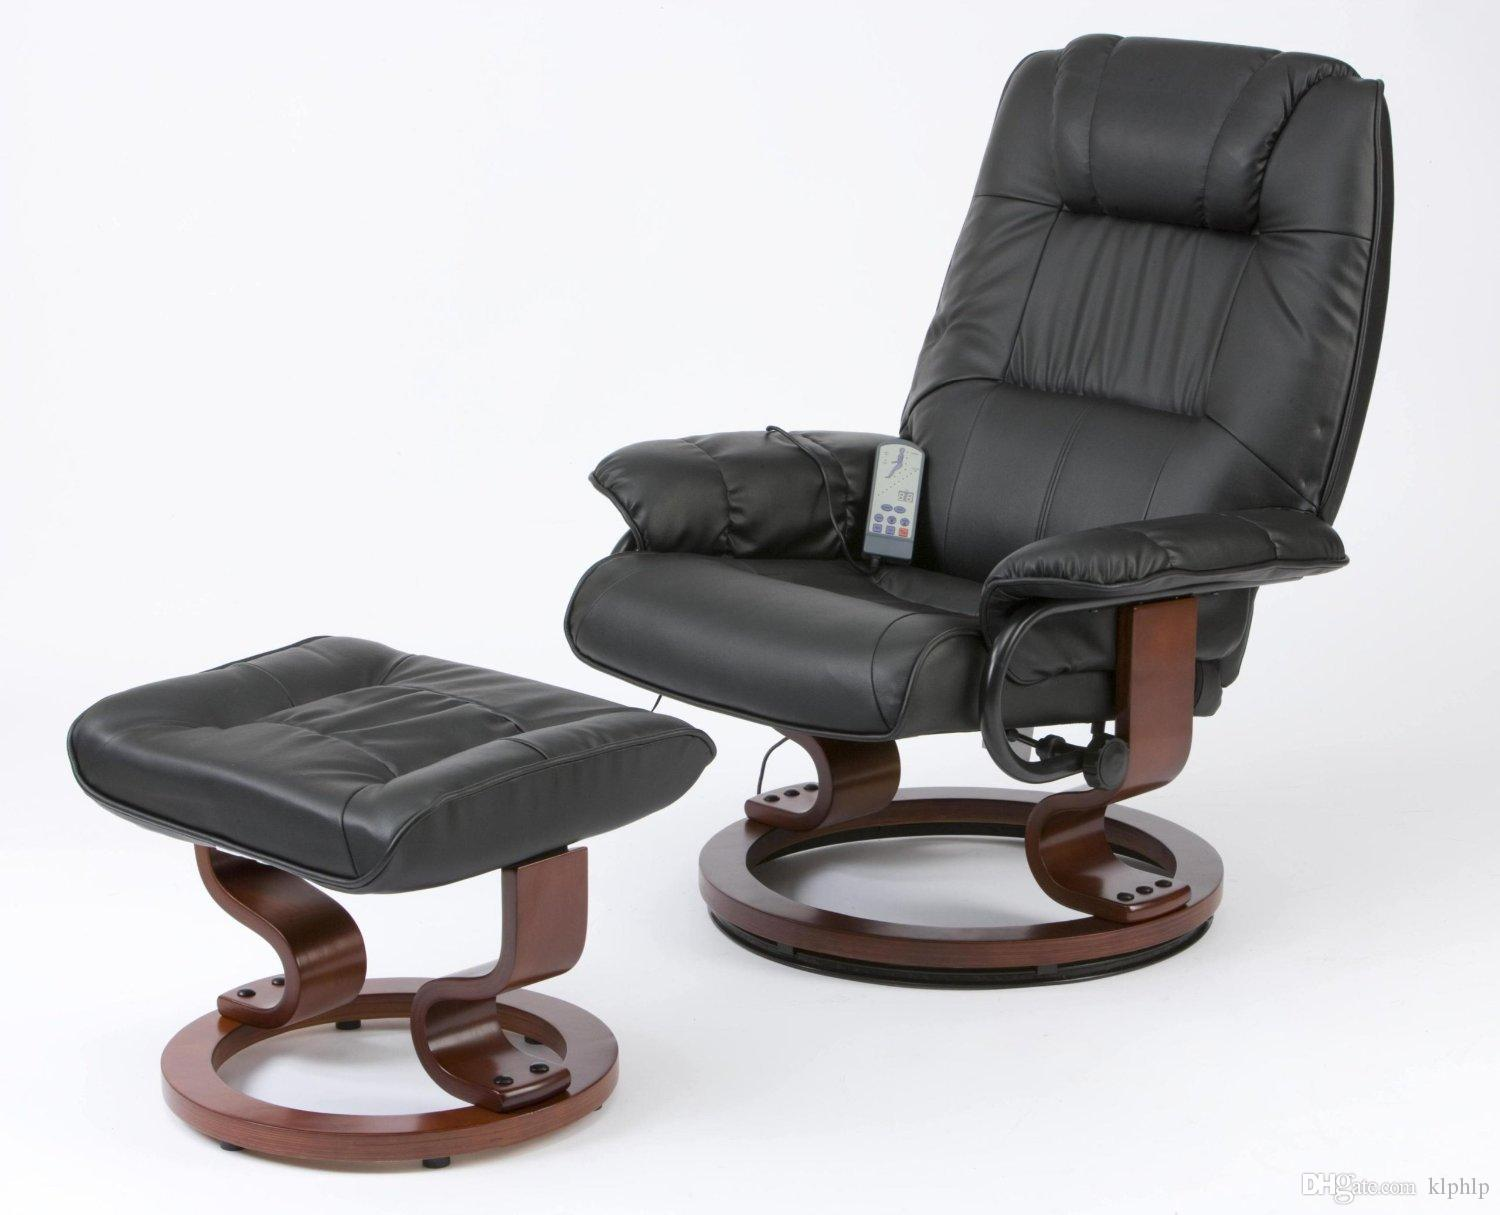 Medical Swivel Massage Chair and Stool Black Leather Pedicure Relax Recliner with 8-Motor Massage u0026 Heat Electric Game Chair & 2017 Medical Swivel Massage Chair And Stool Black Leather Pedicure ... islam-shia.org